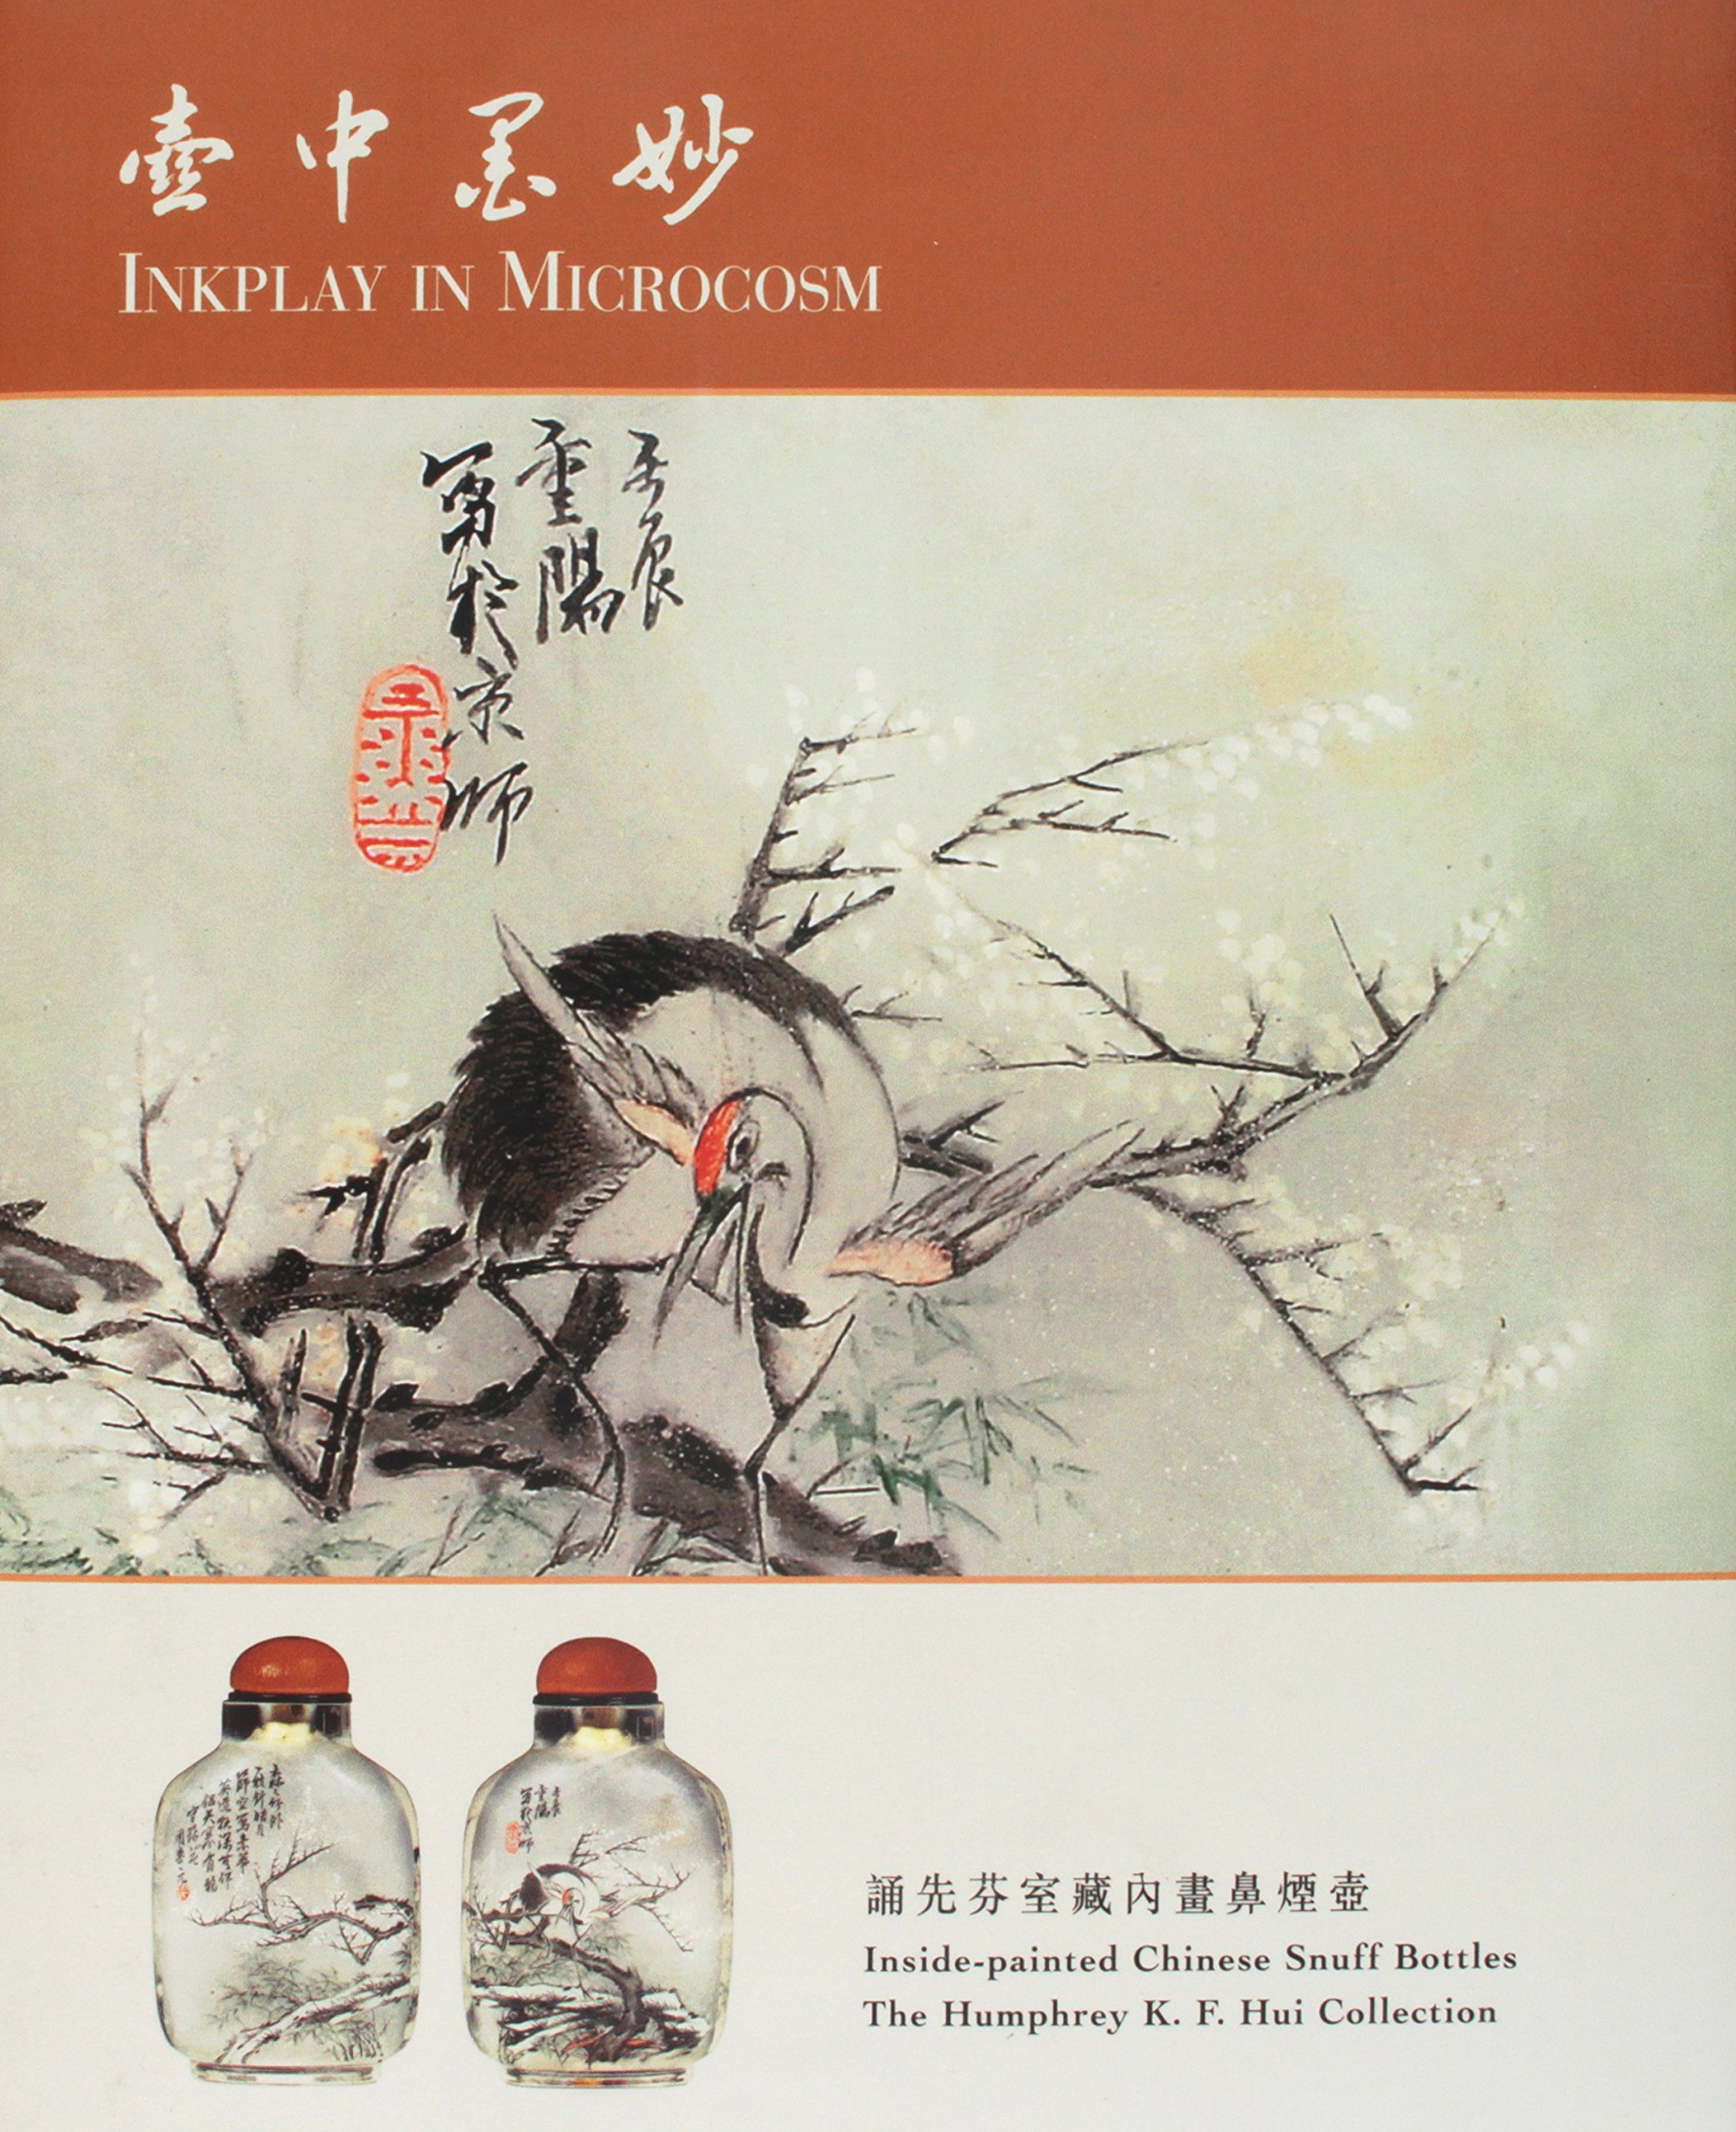 Inkplay in Microcosm: Inside-Painted Snuff Bottles, the Humphrey K. F. Hui Collection